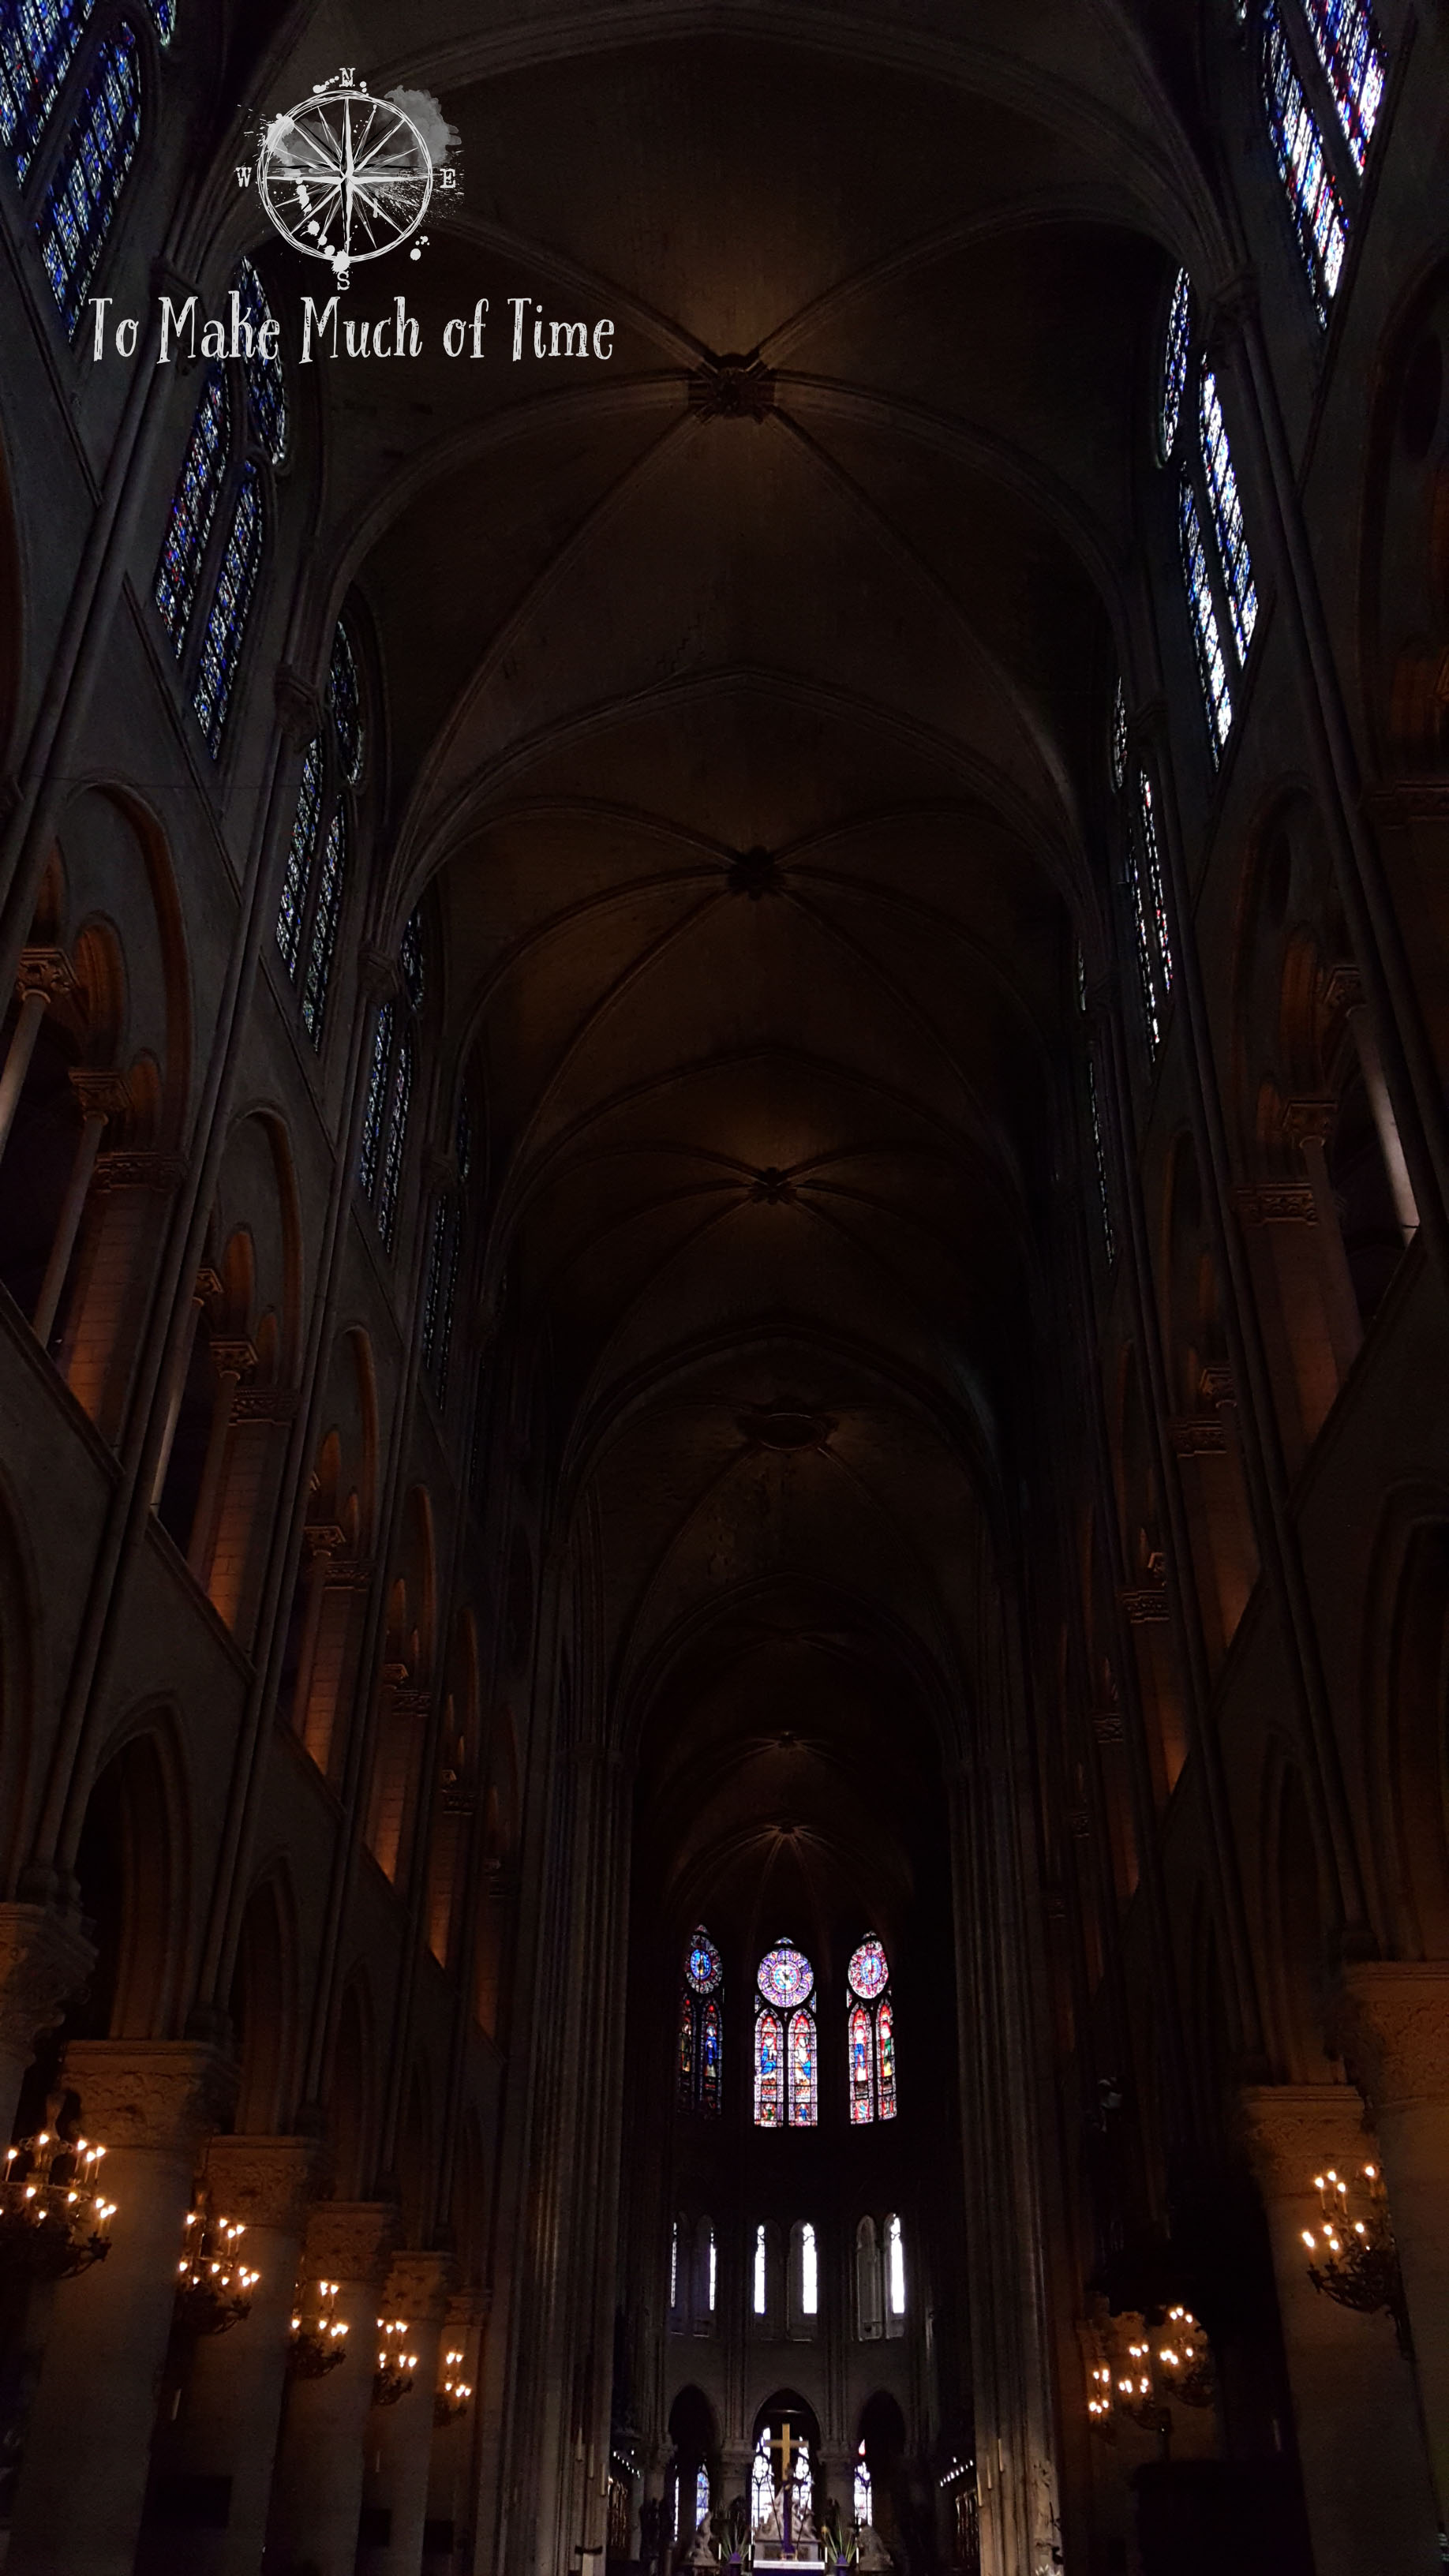 Trying to take a photo of the Notre-Dame altar and arched ceiling without catching any people in the frame was a bit of a challenge.